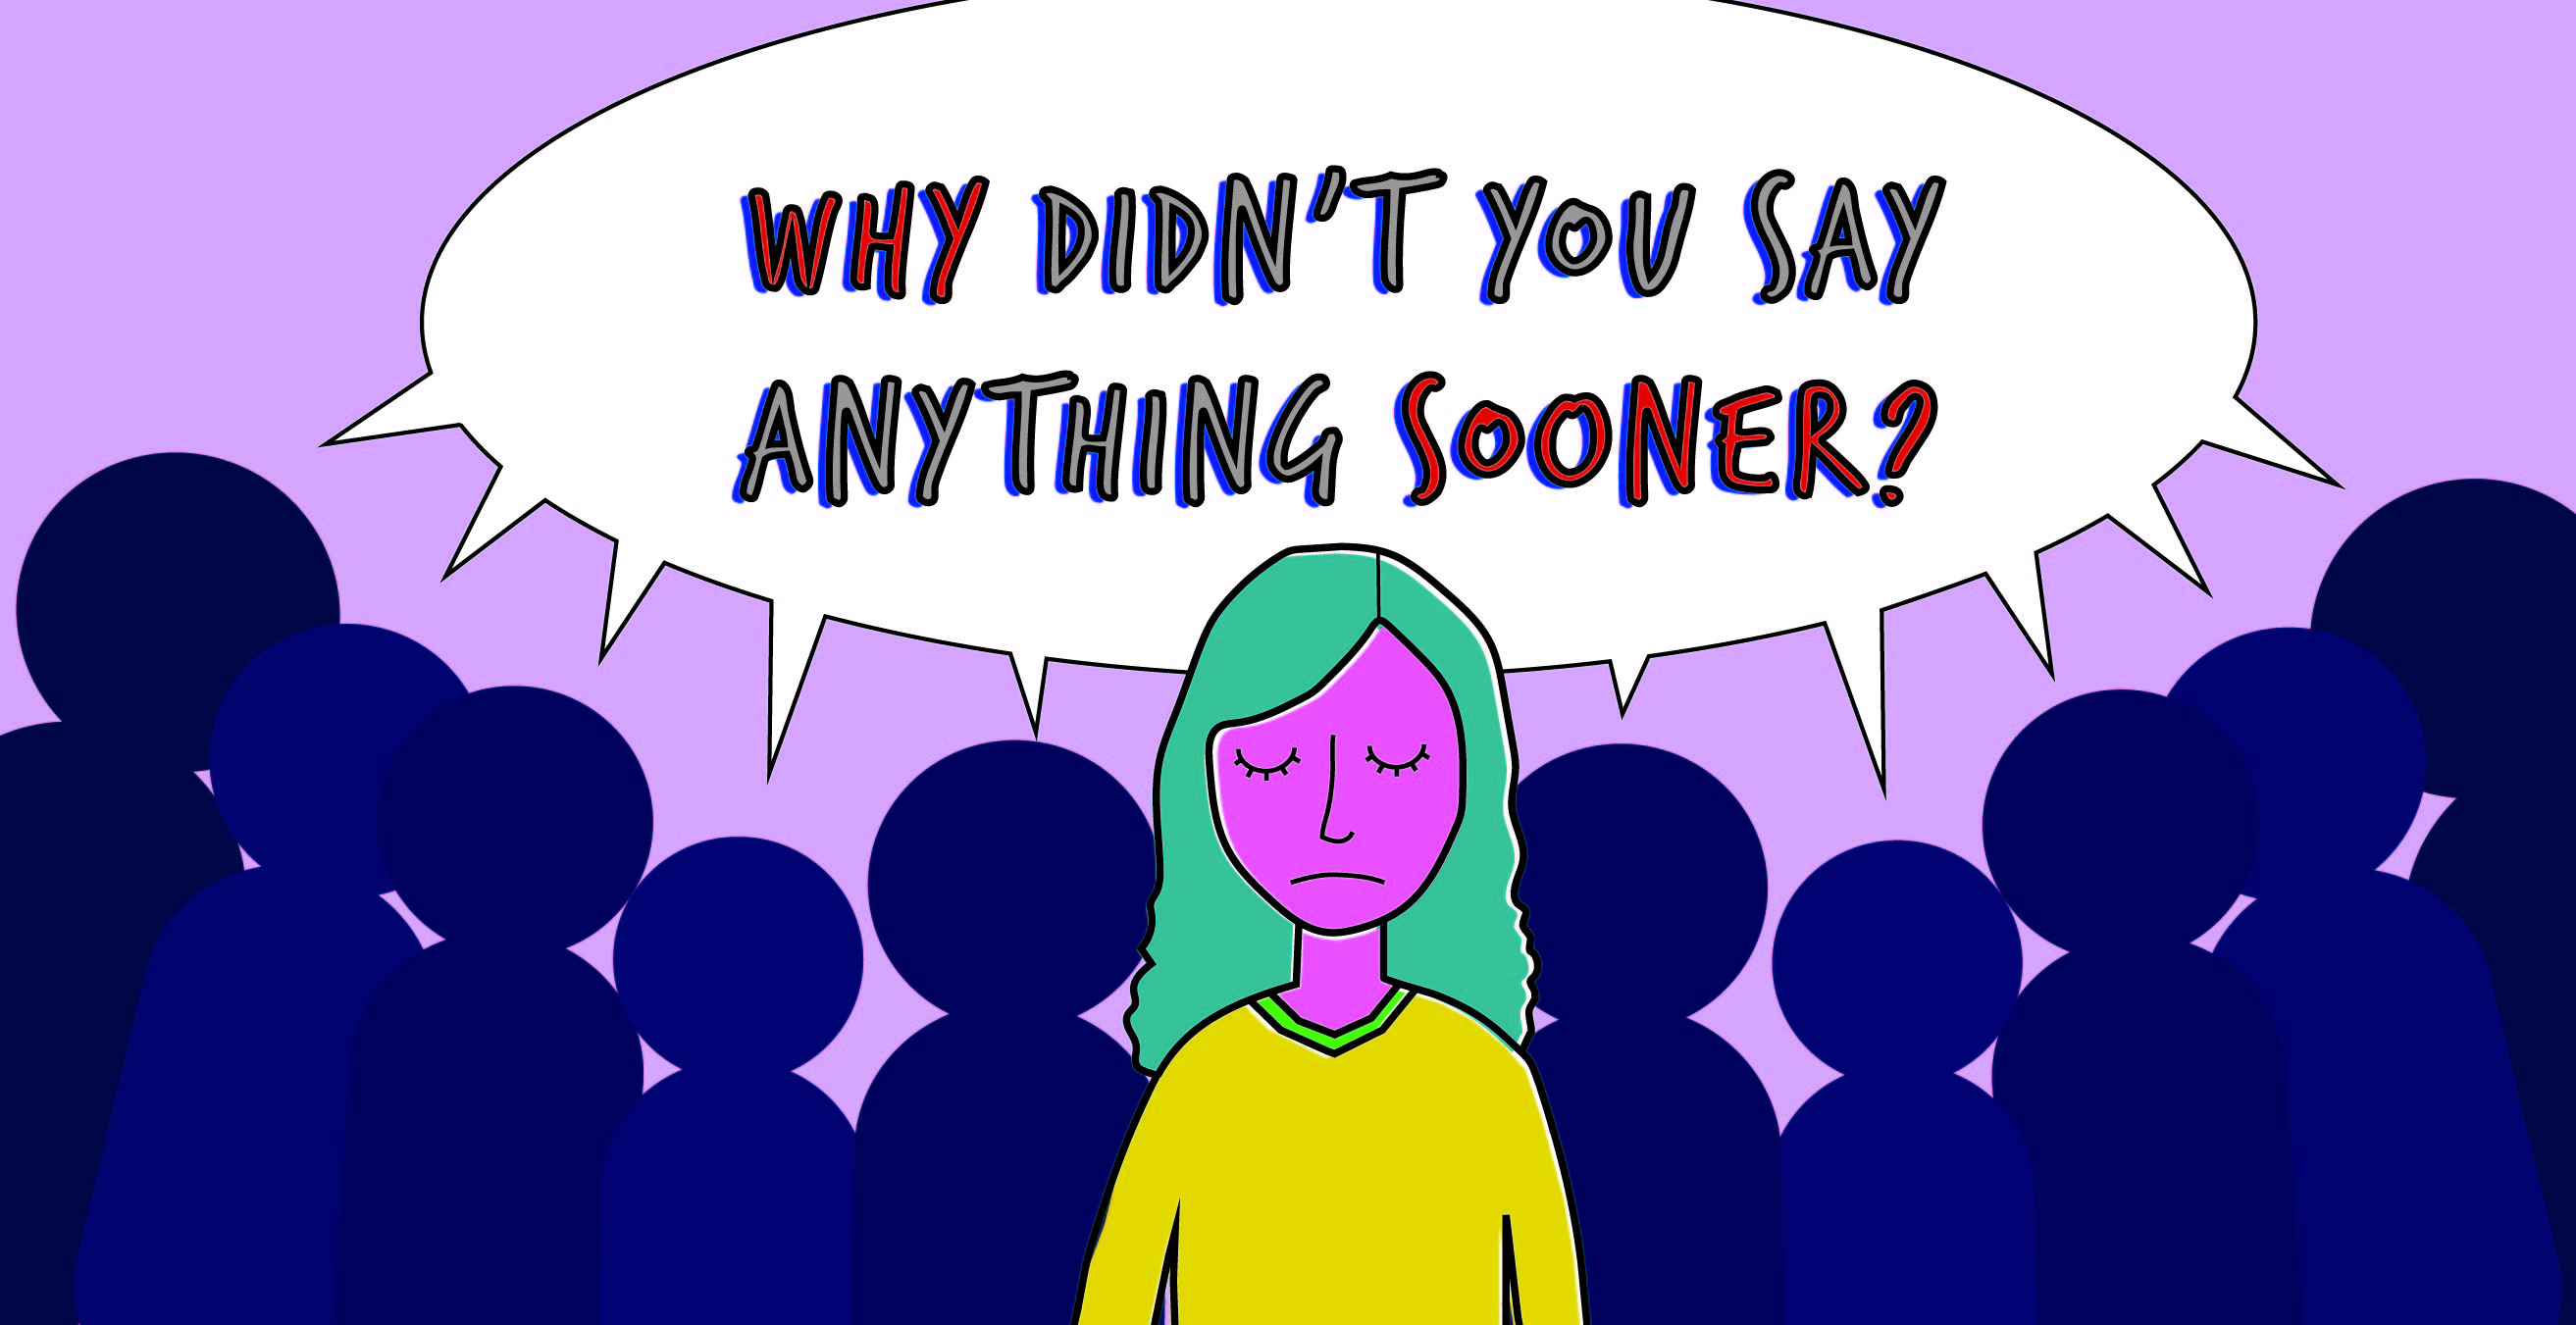 """Image of women surrounded by a crowd saying """"Why didn't you say anything sooner?"""""""